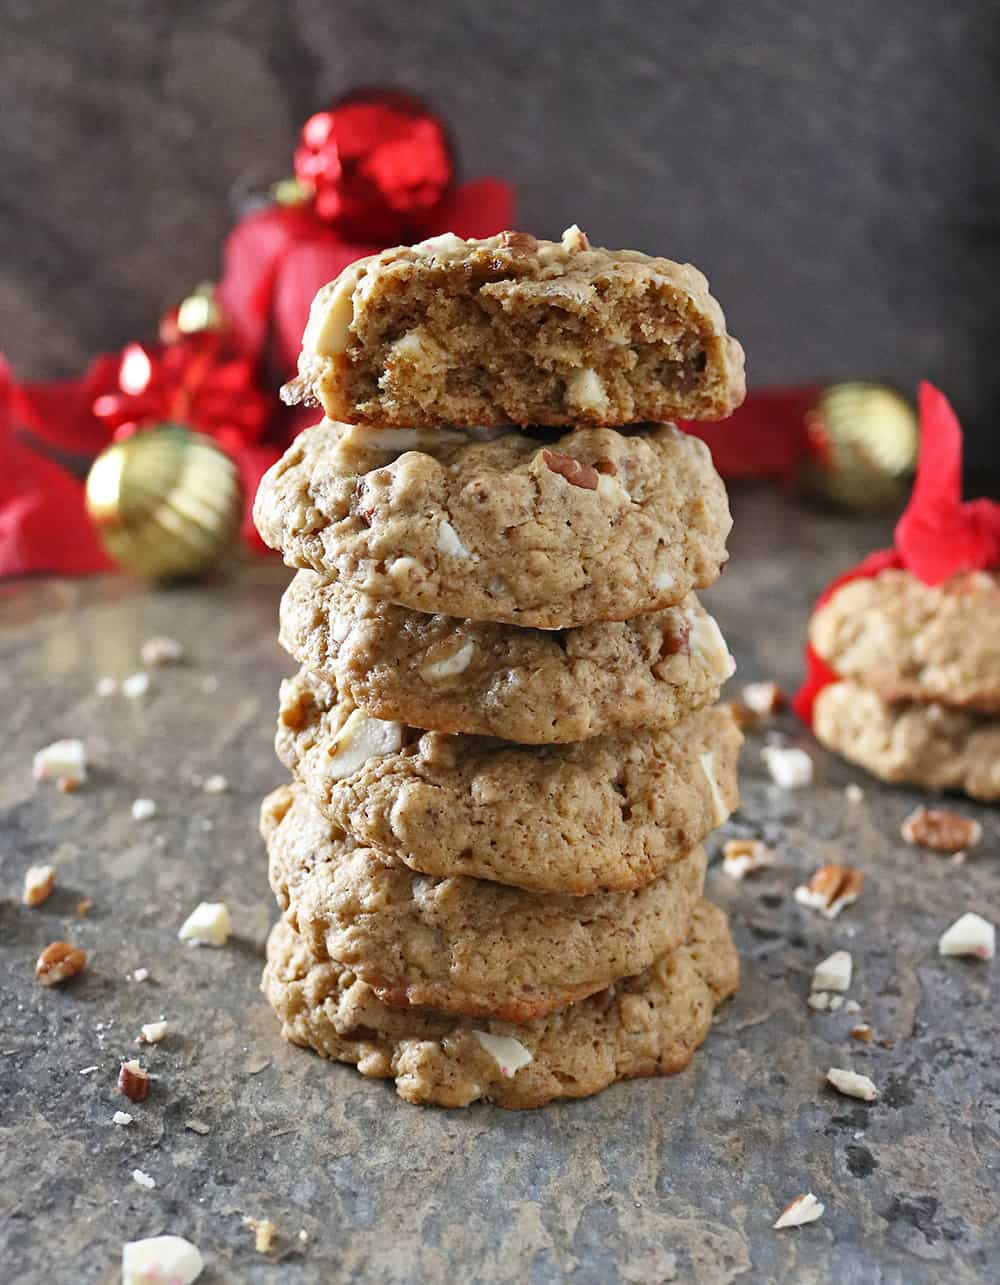 Delicious Gluten Free Peppermint Cookies Recipe Image